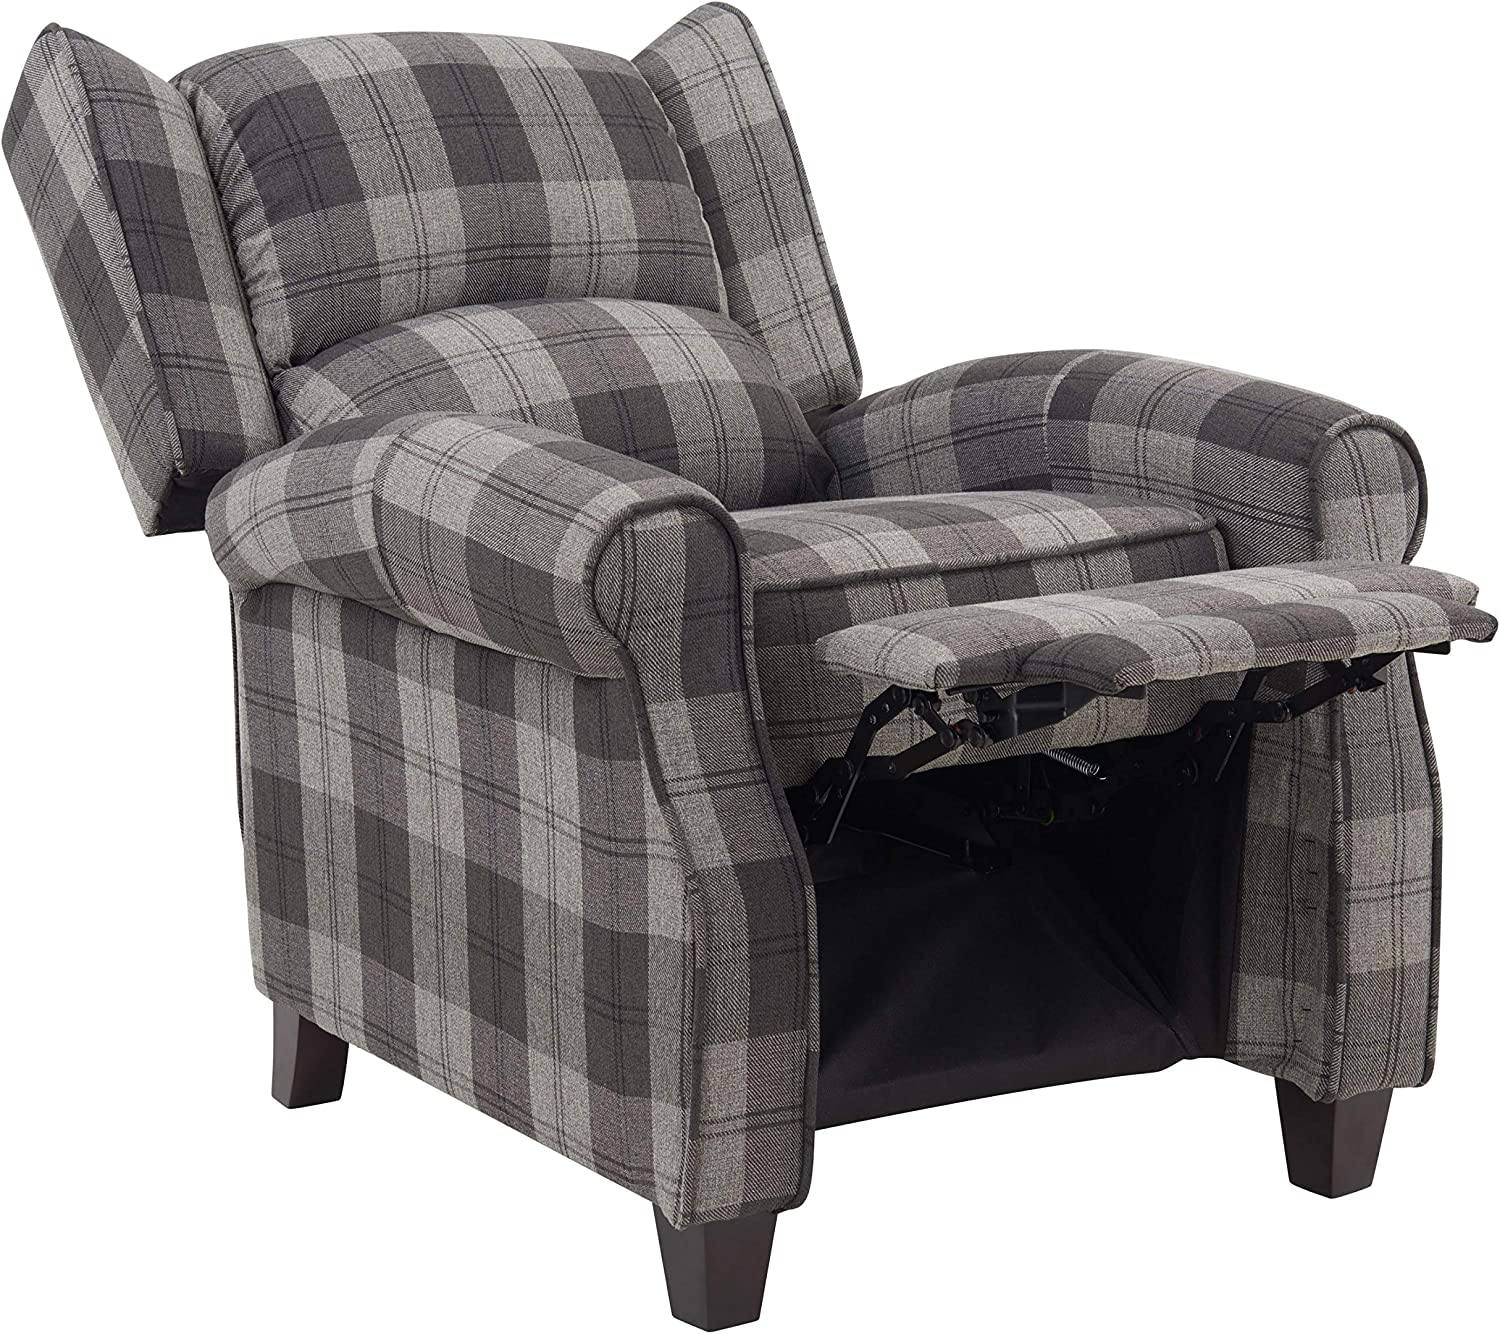 Tartan Fabric Recliner Armchair Upholstered Wing Back Check Lounge Chair in Grey or Beige (Grey)